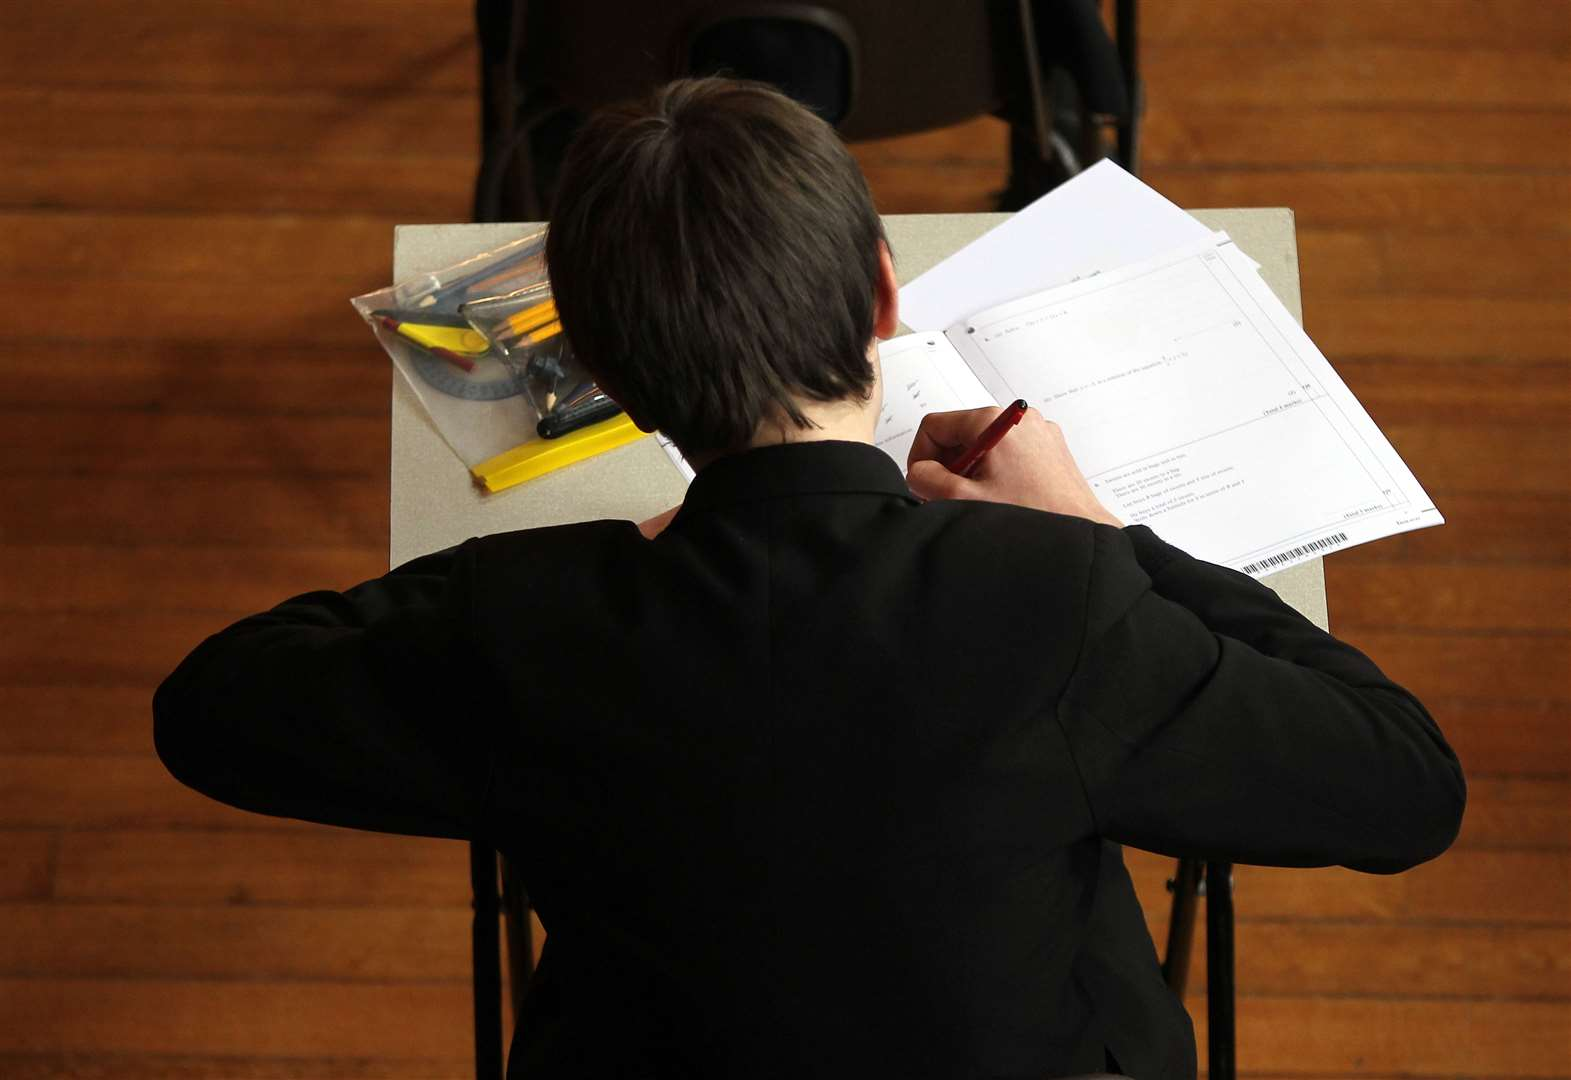 Youth View: We've all shared exam stress